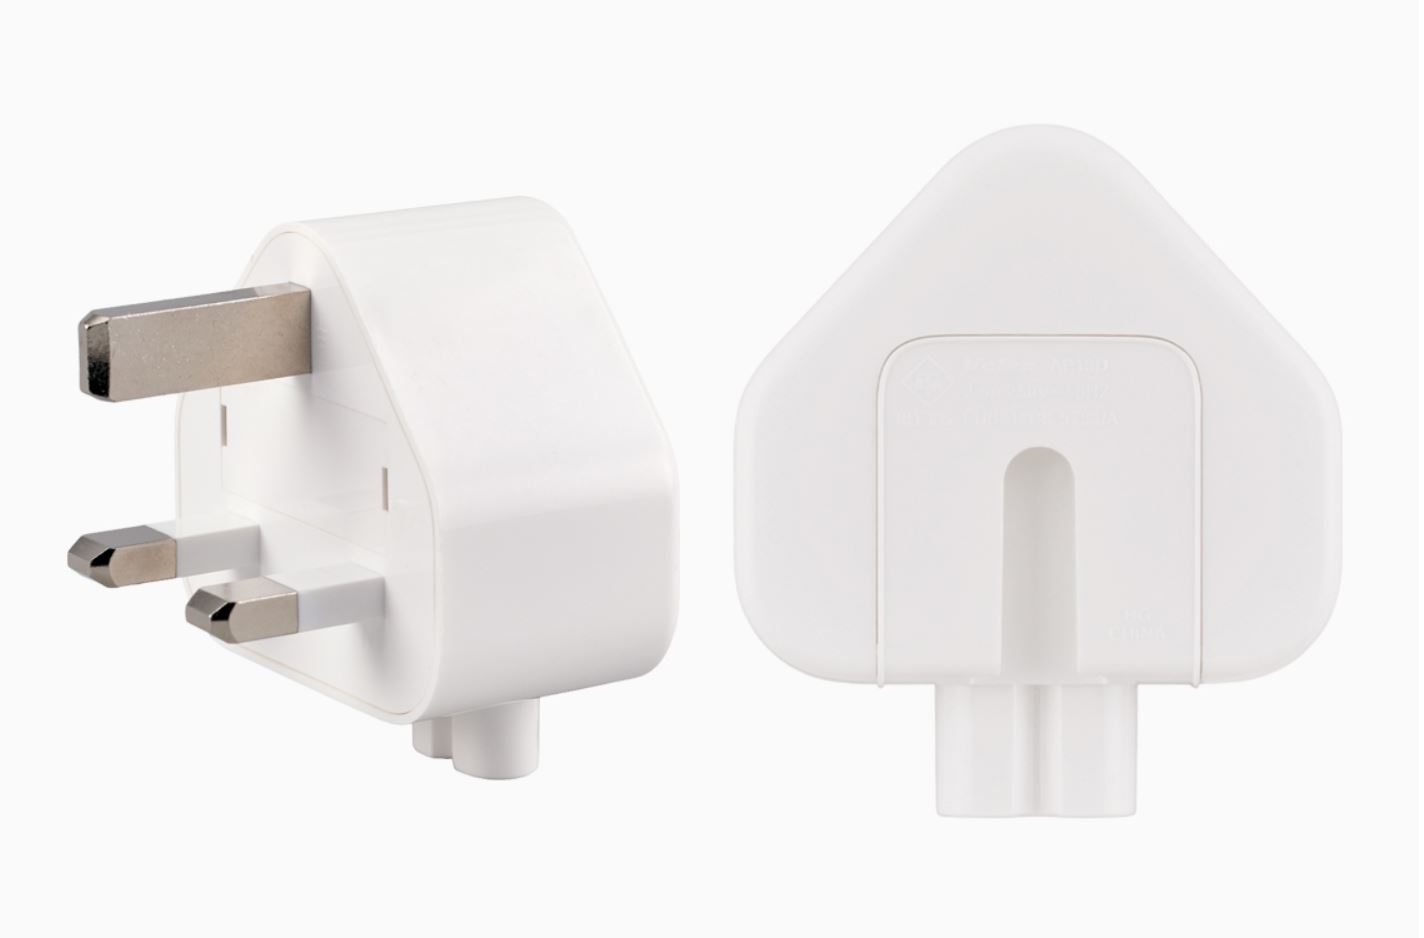 Apple Announces Recall Program For Three-Prong AC Wall Plug Adapter